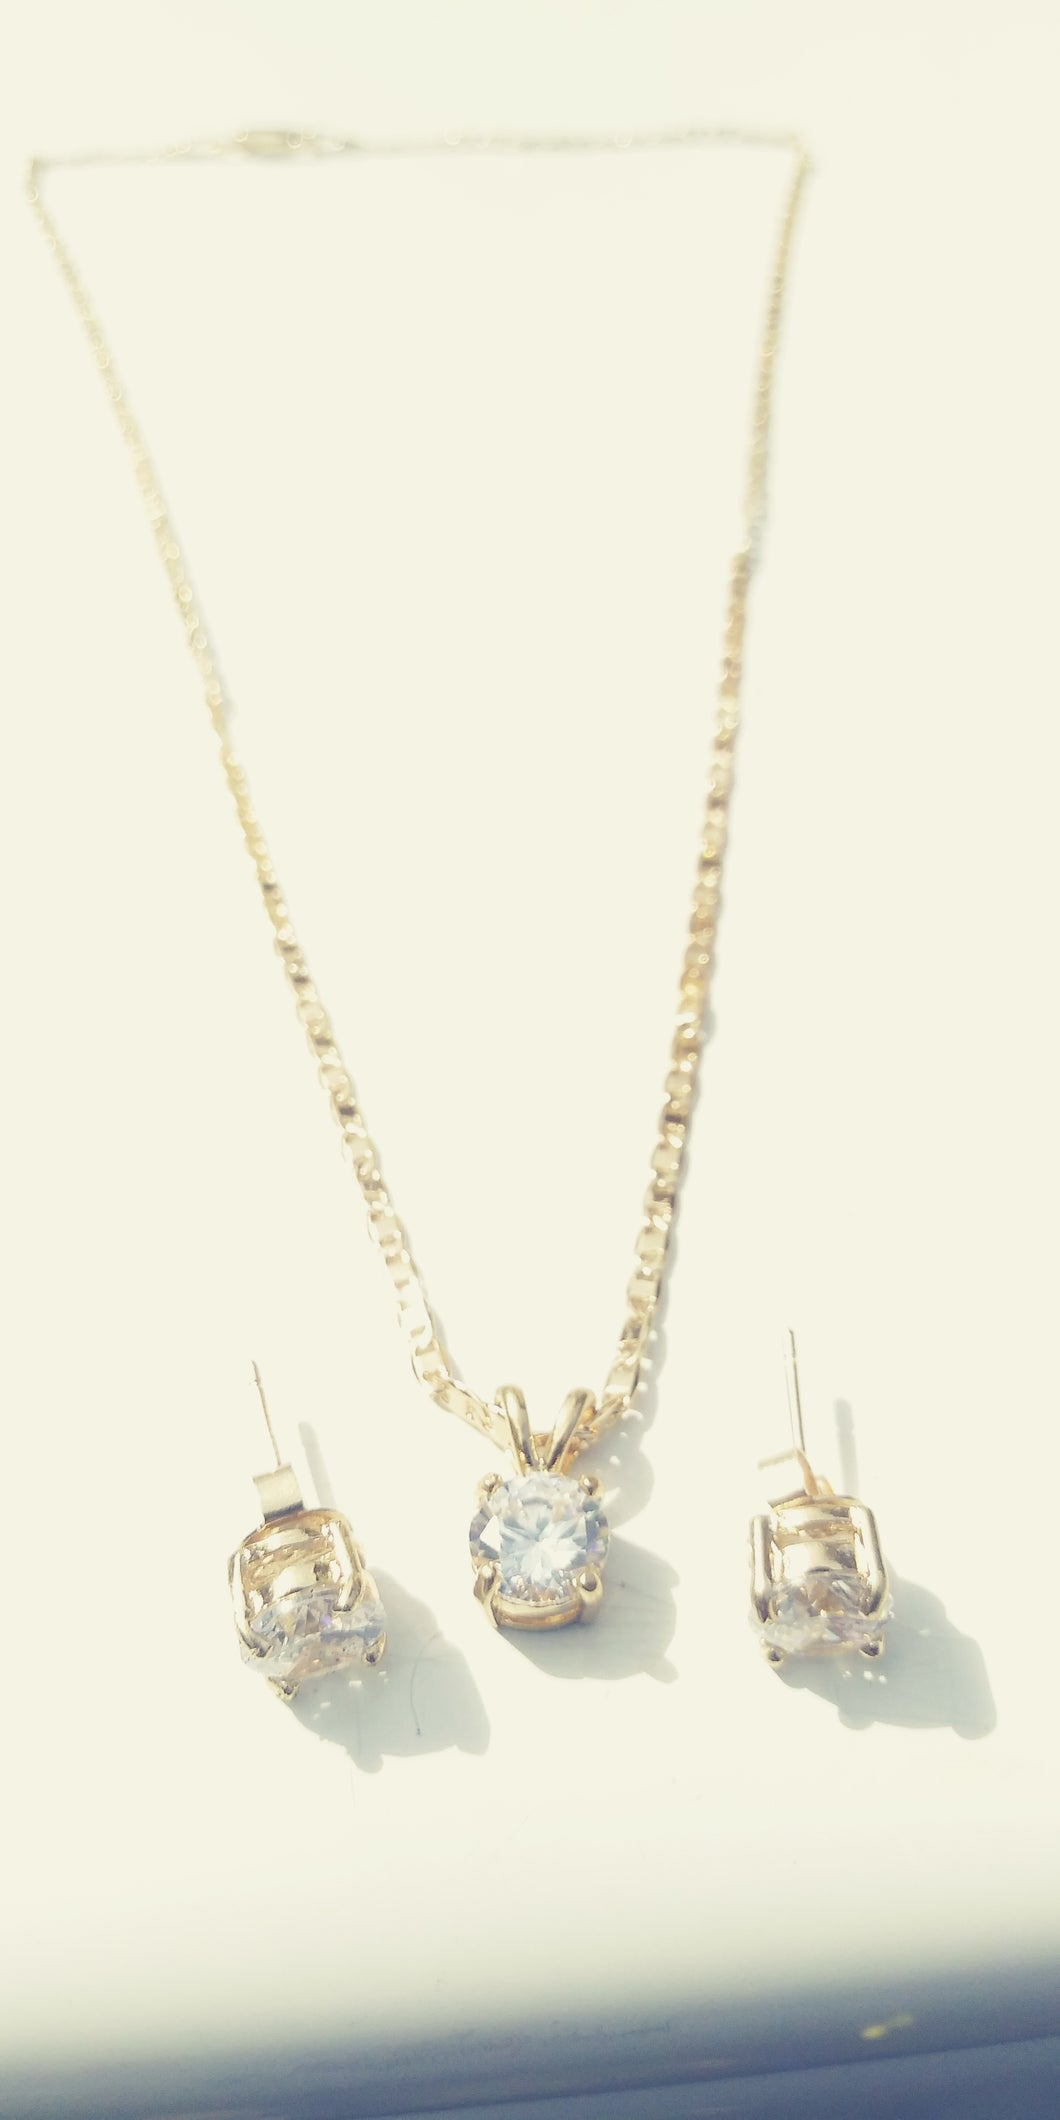 14k Gold Filled Womens Full Set Chain pendant and earrings